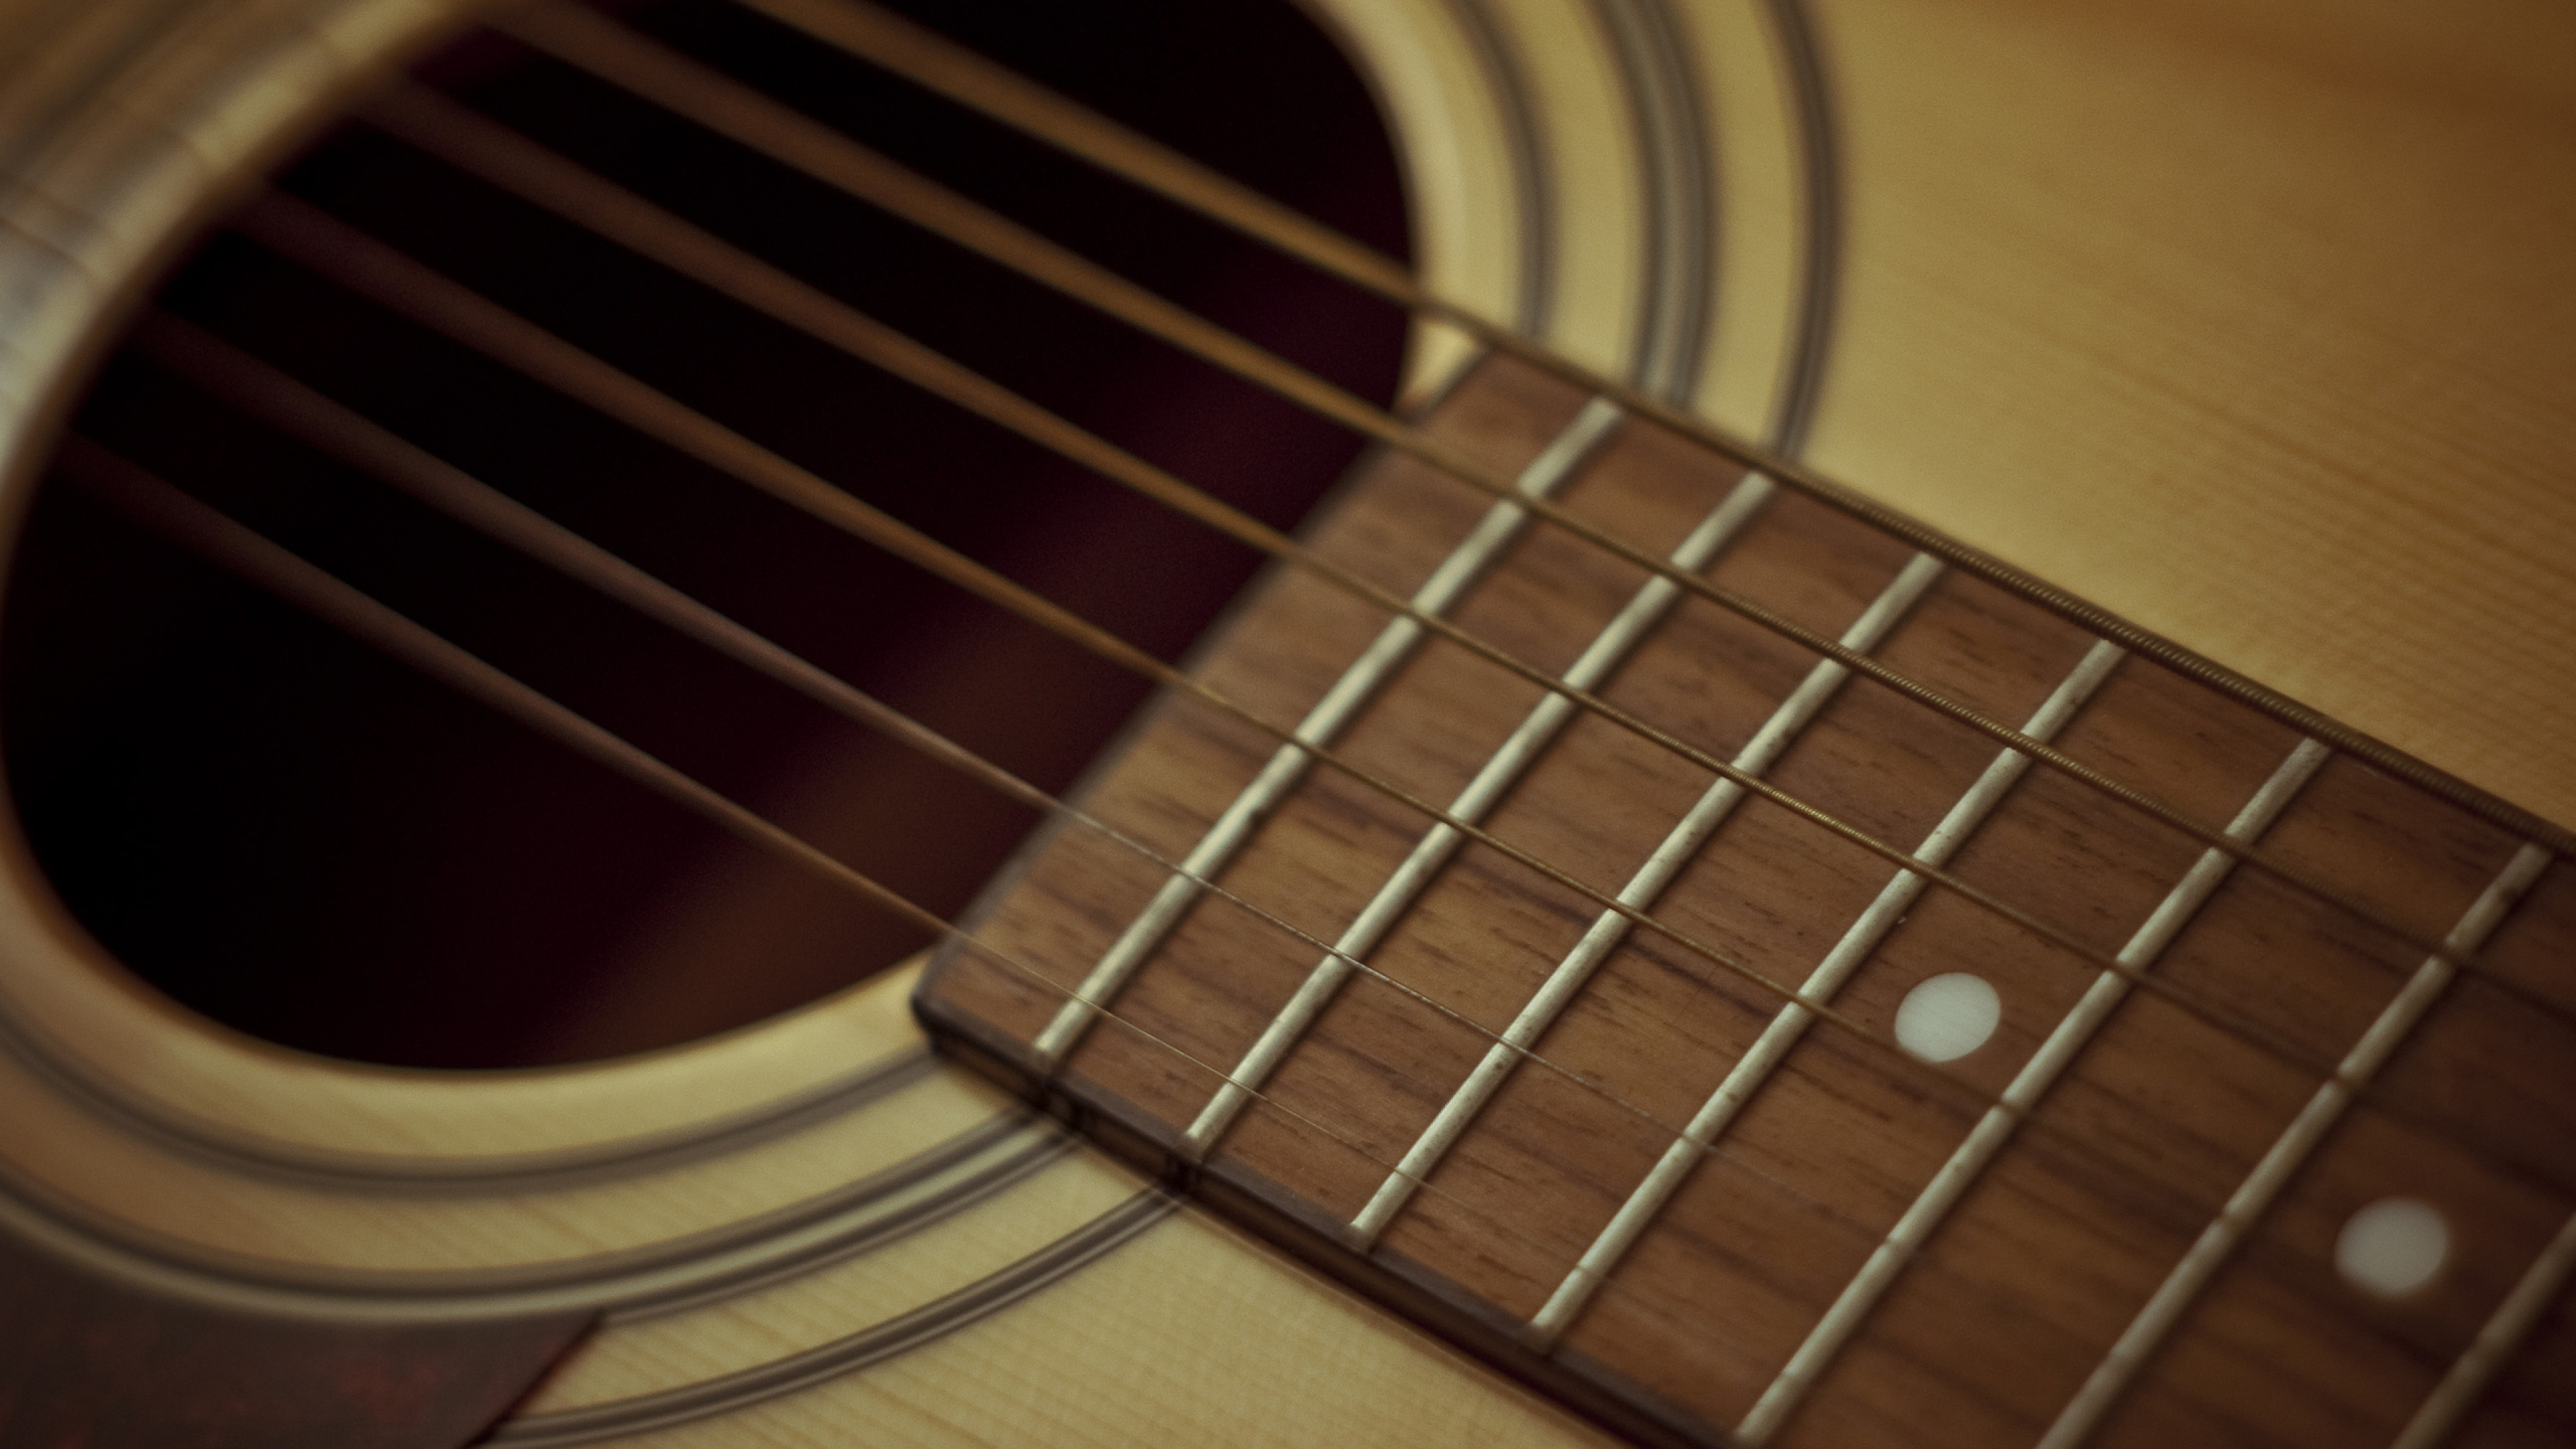 Guitar Hd Wallpapers 1080p 4k Strings Wallpapers High Quality Download Free